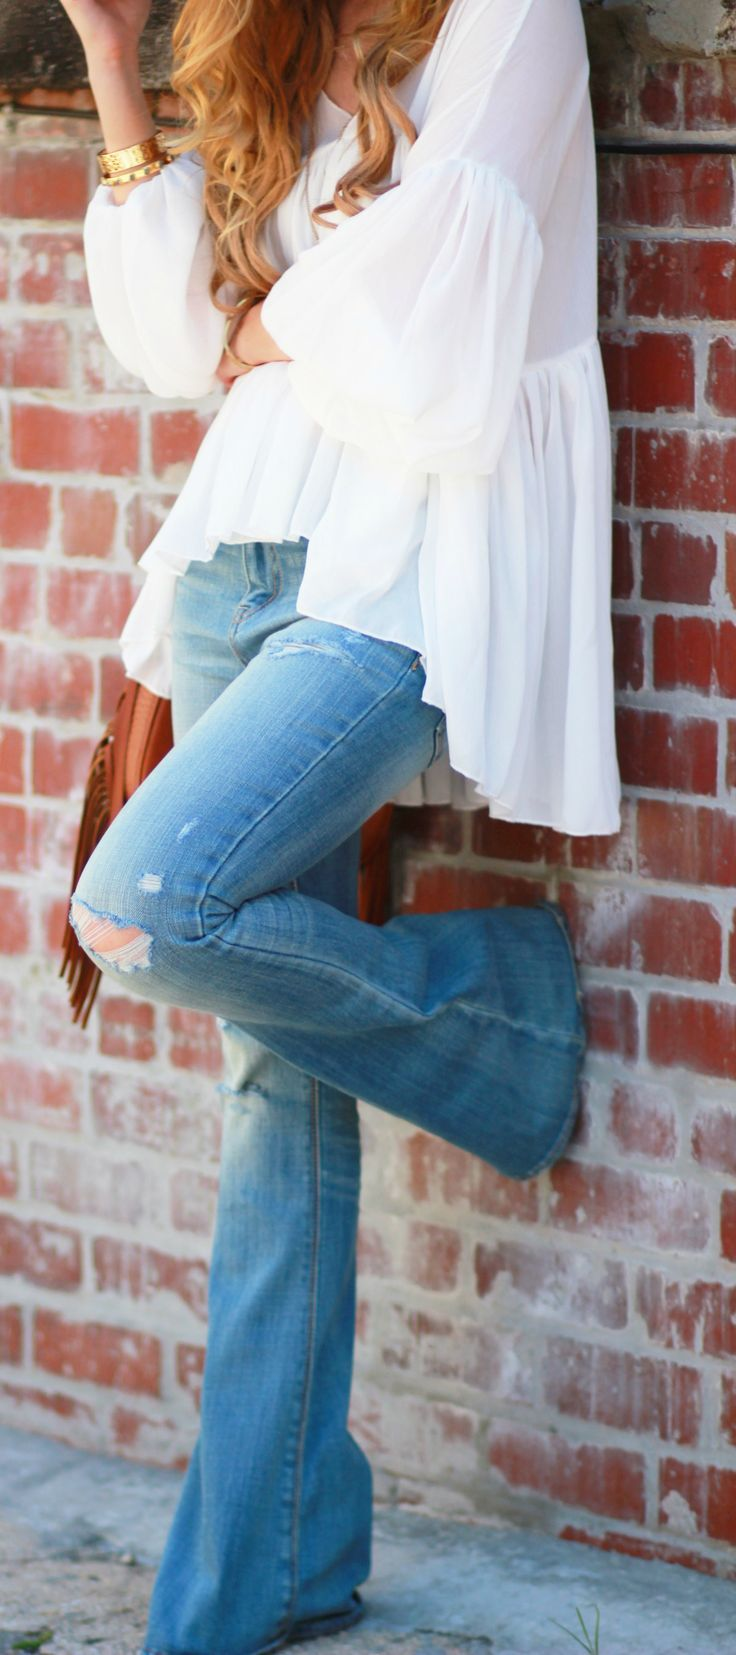 Flowy Peasant Top | Boho Babe | Flare jeans outfit, Dress ...